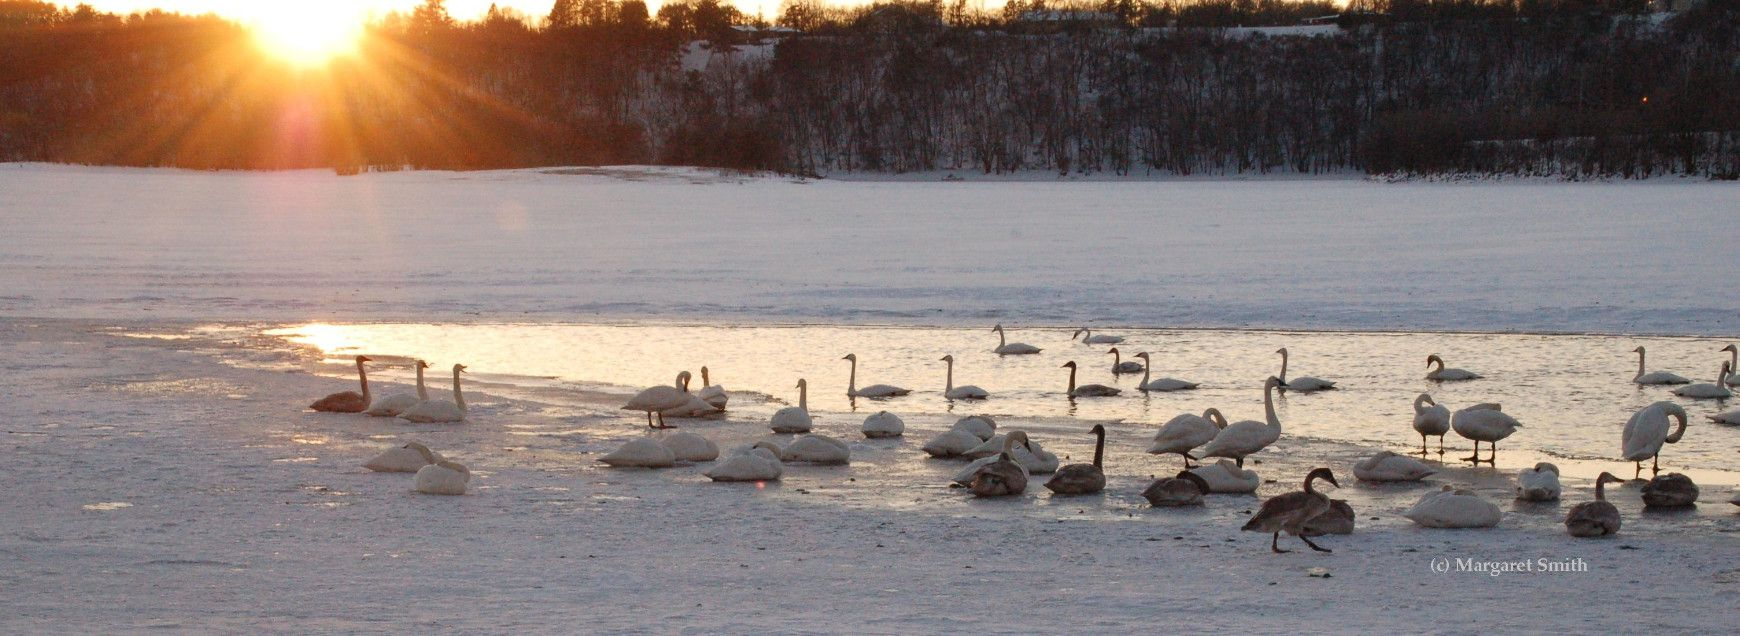 The Trumpeter Swan Society's New and Notes will keep you up to date on swan events, issues, and progress